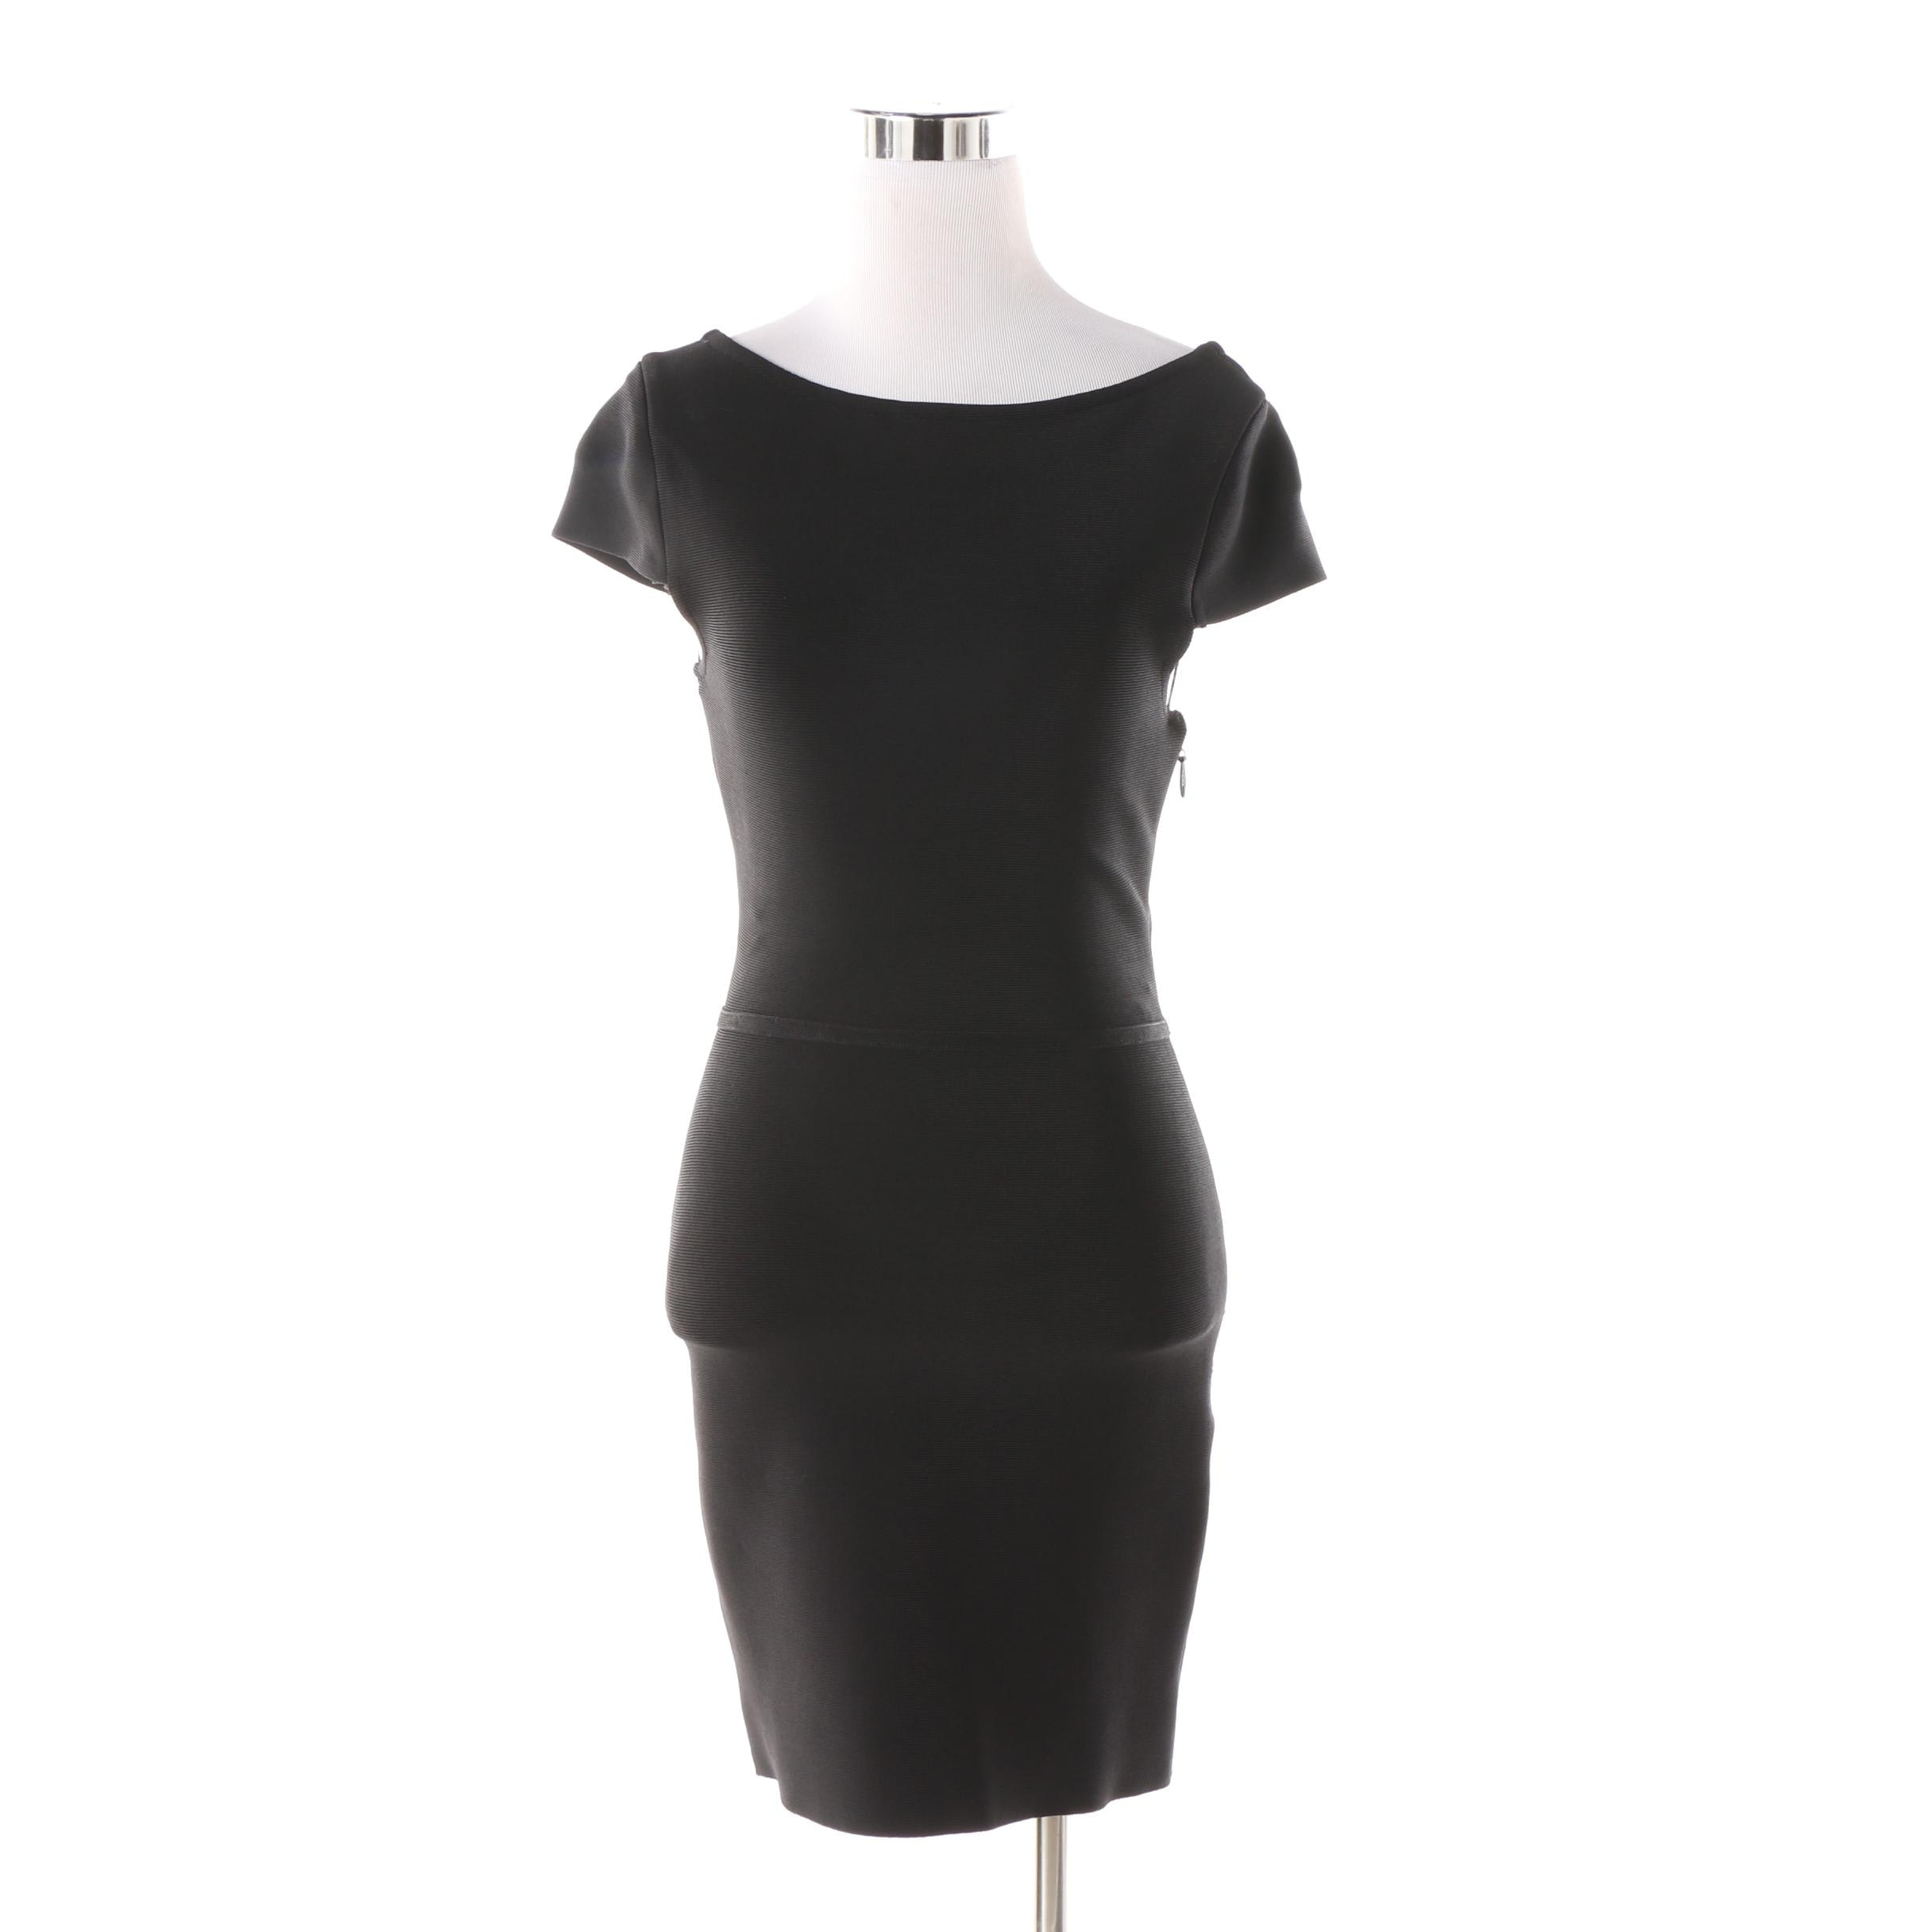 Herve Leger Black Bodycon Minidress